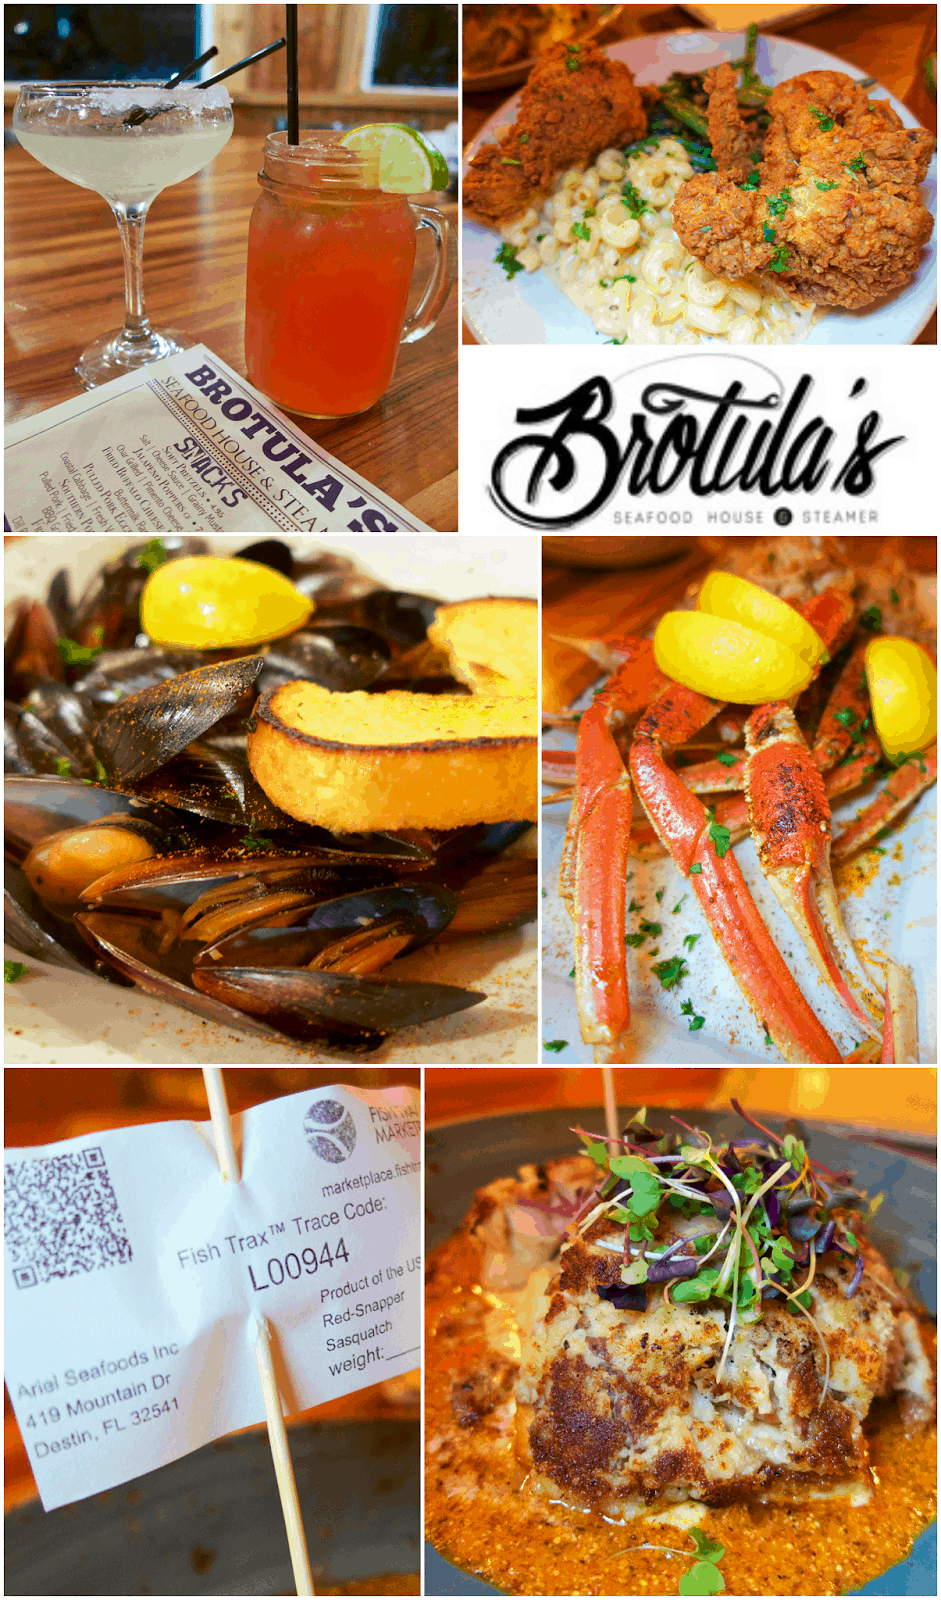 Brotula's Destin, FL - amazing seafood and southern favorites. We ate so much I thought we were going to explode!